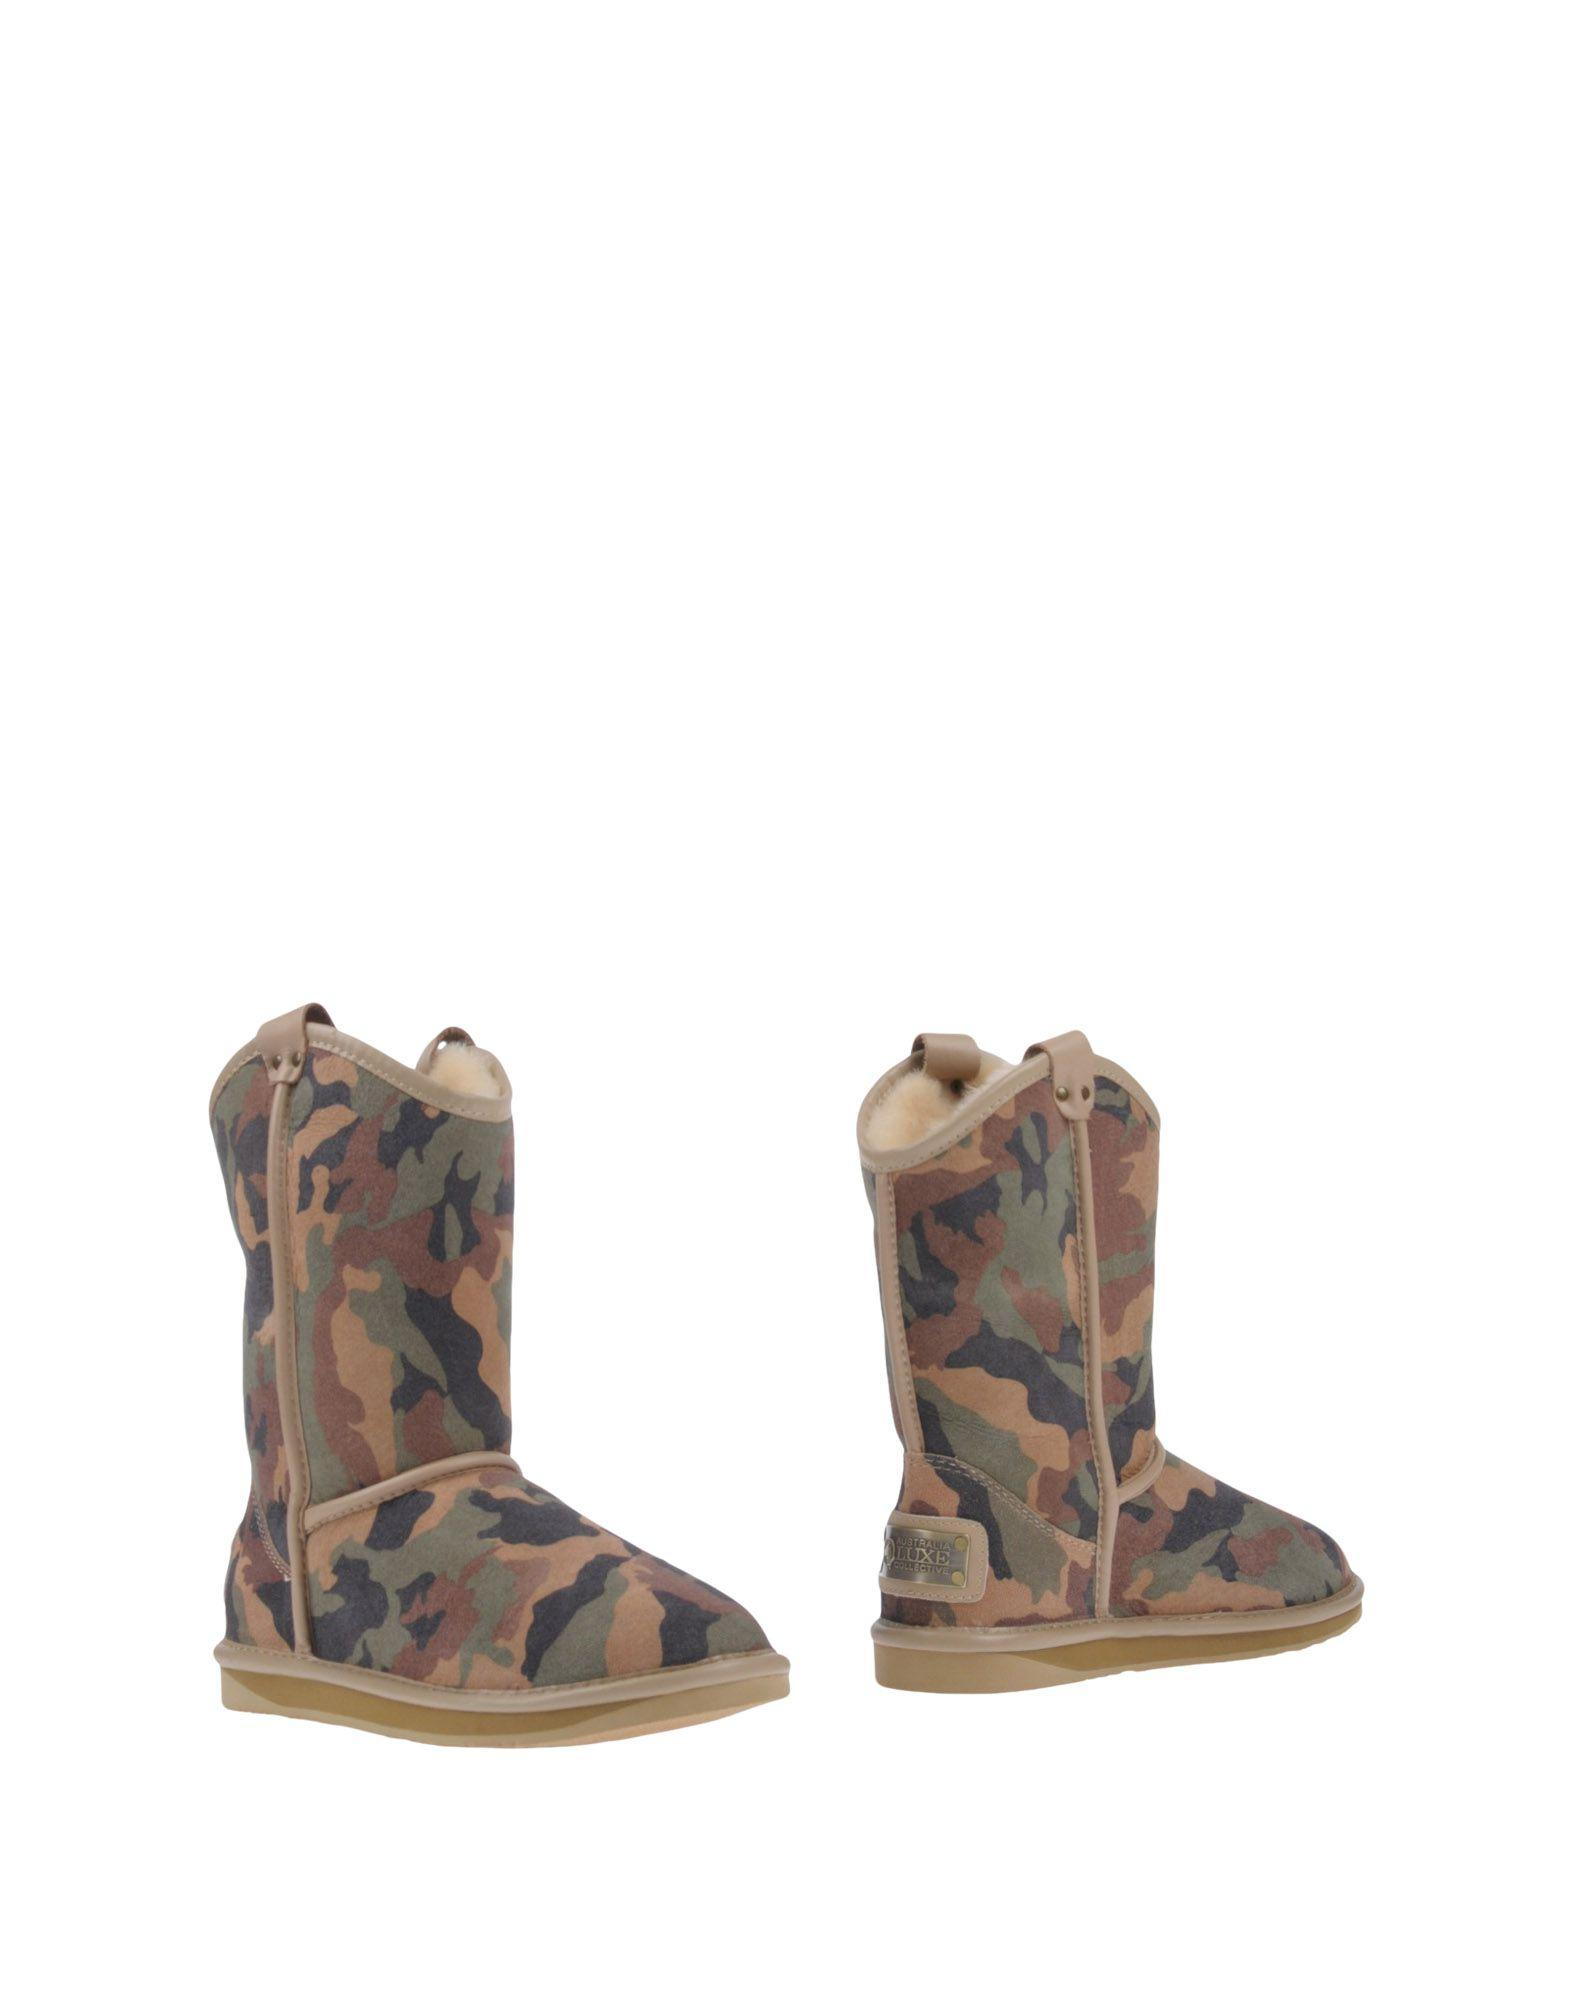 Australia Luxe Collective Ankle Boot In Military Green